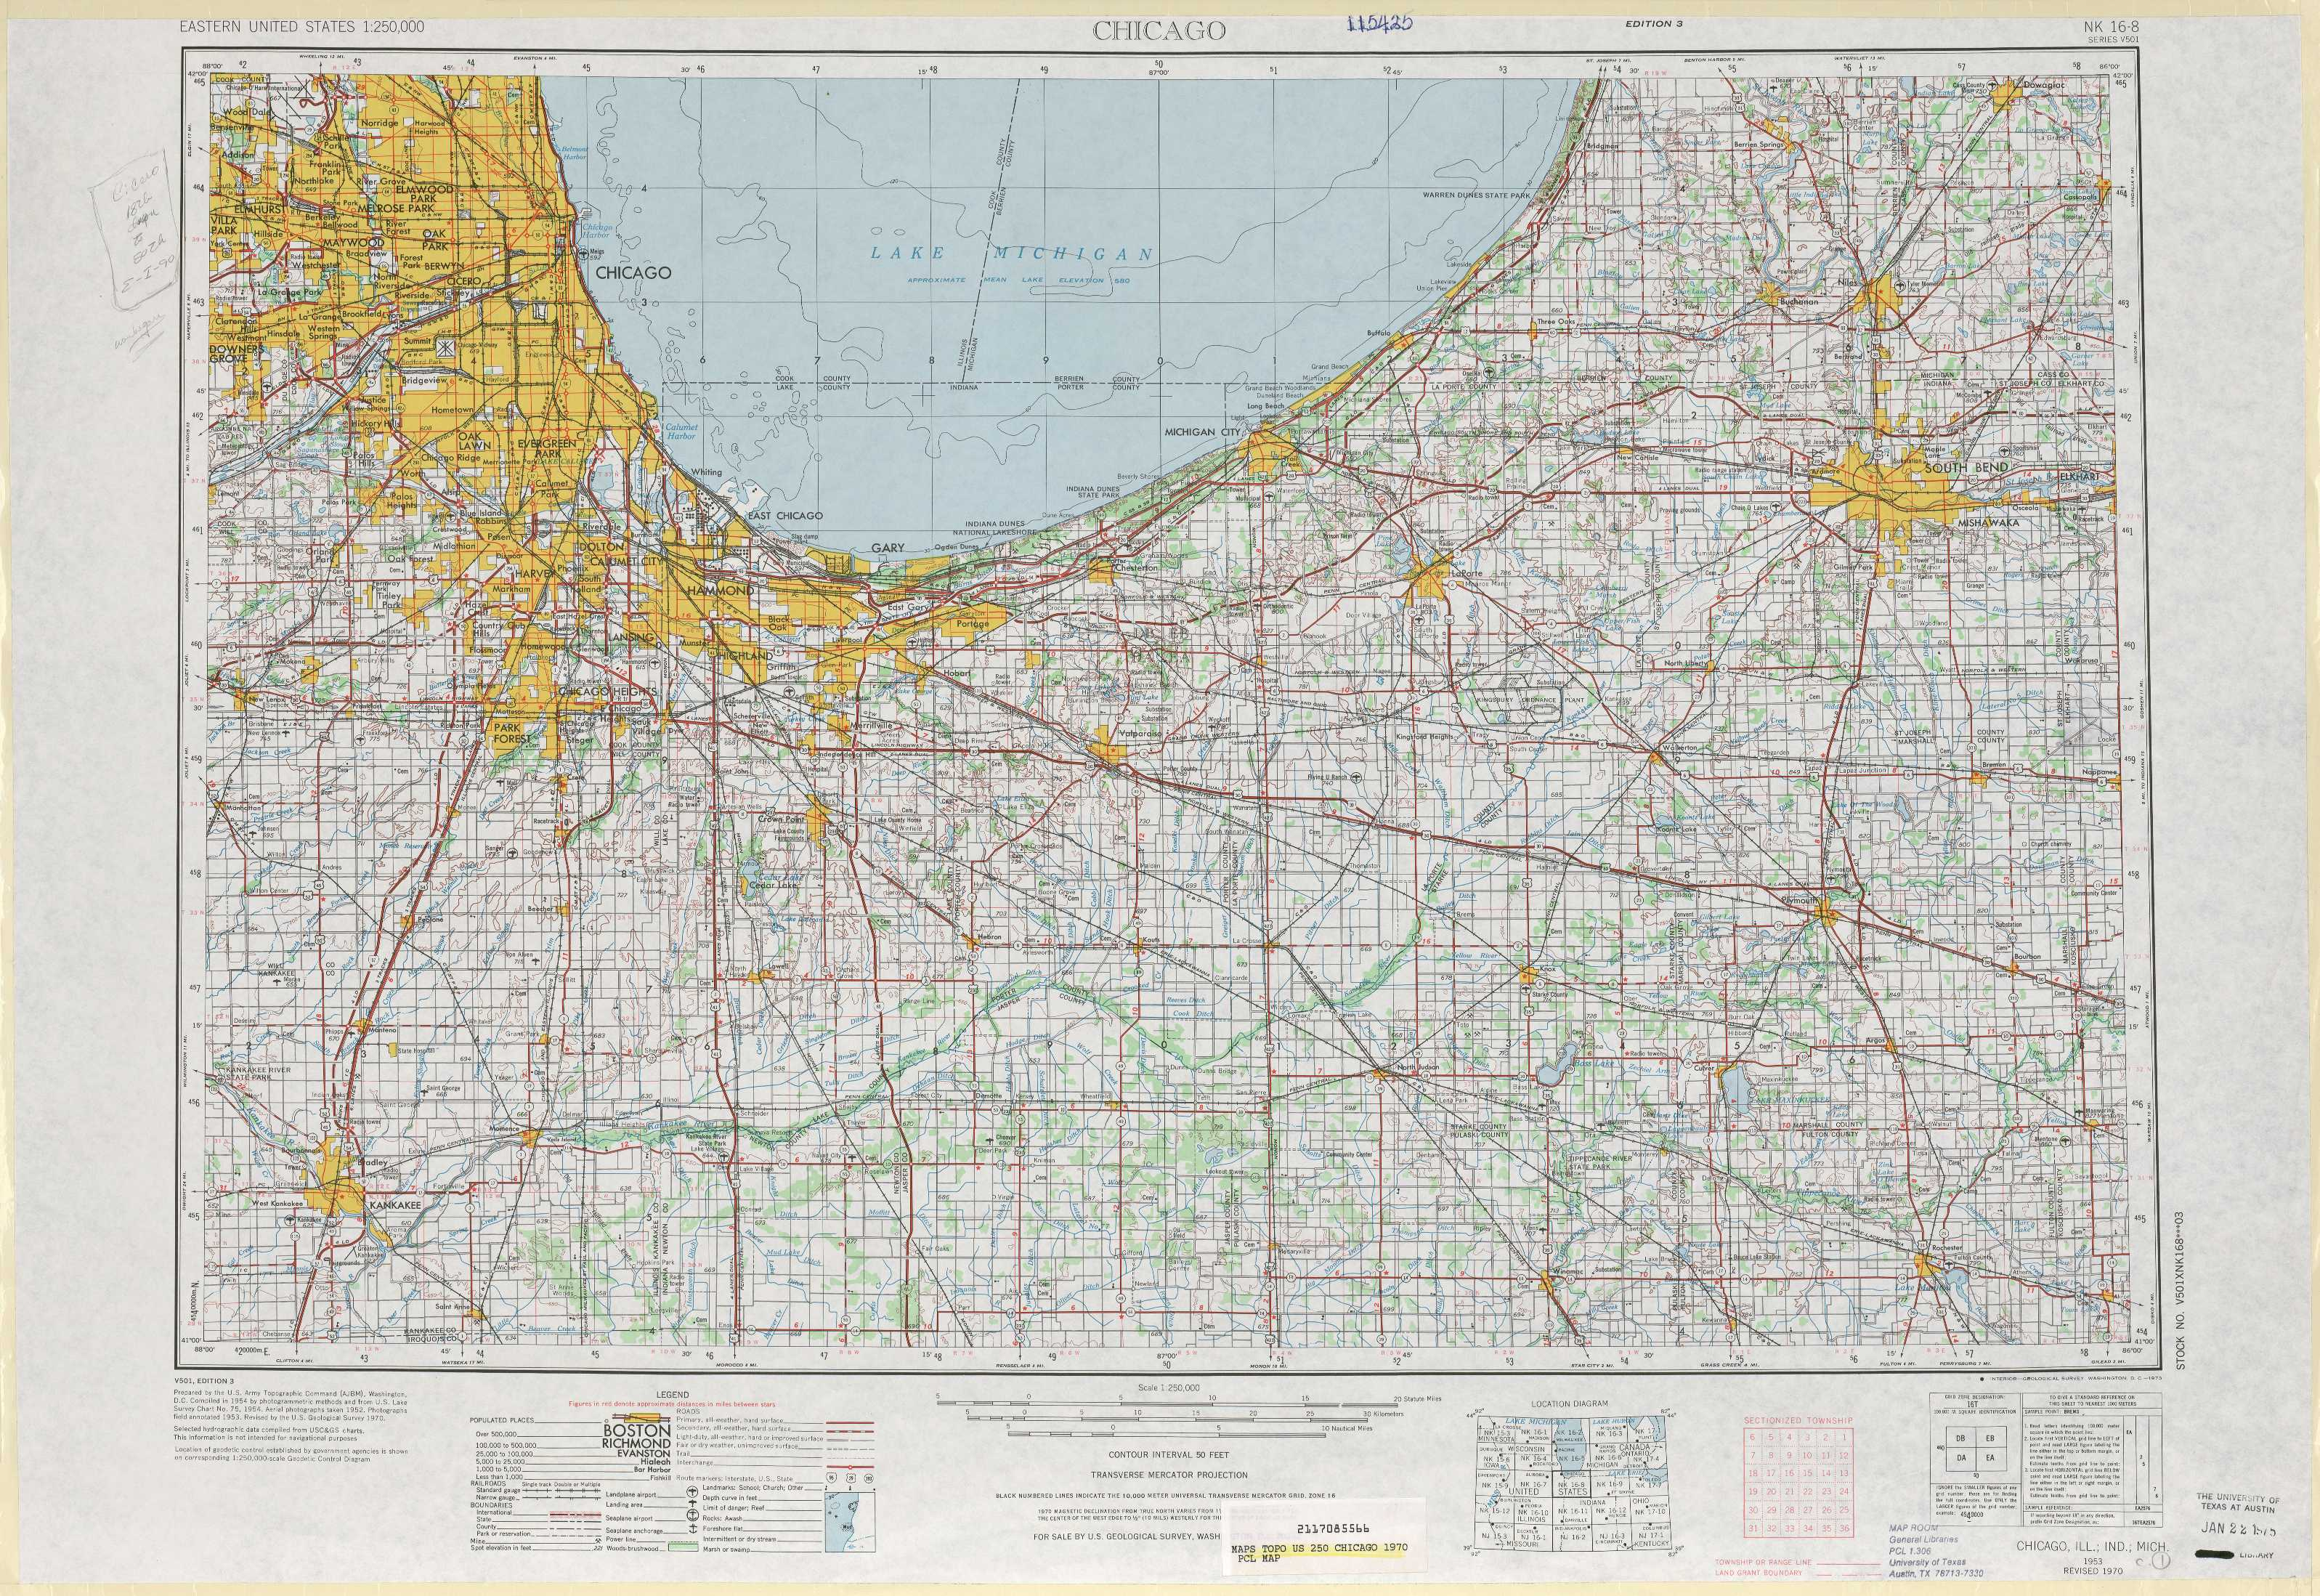 Chicago Topographic Maps In Il Mi Usgs Topo Quad 41086a1 At 1